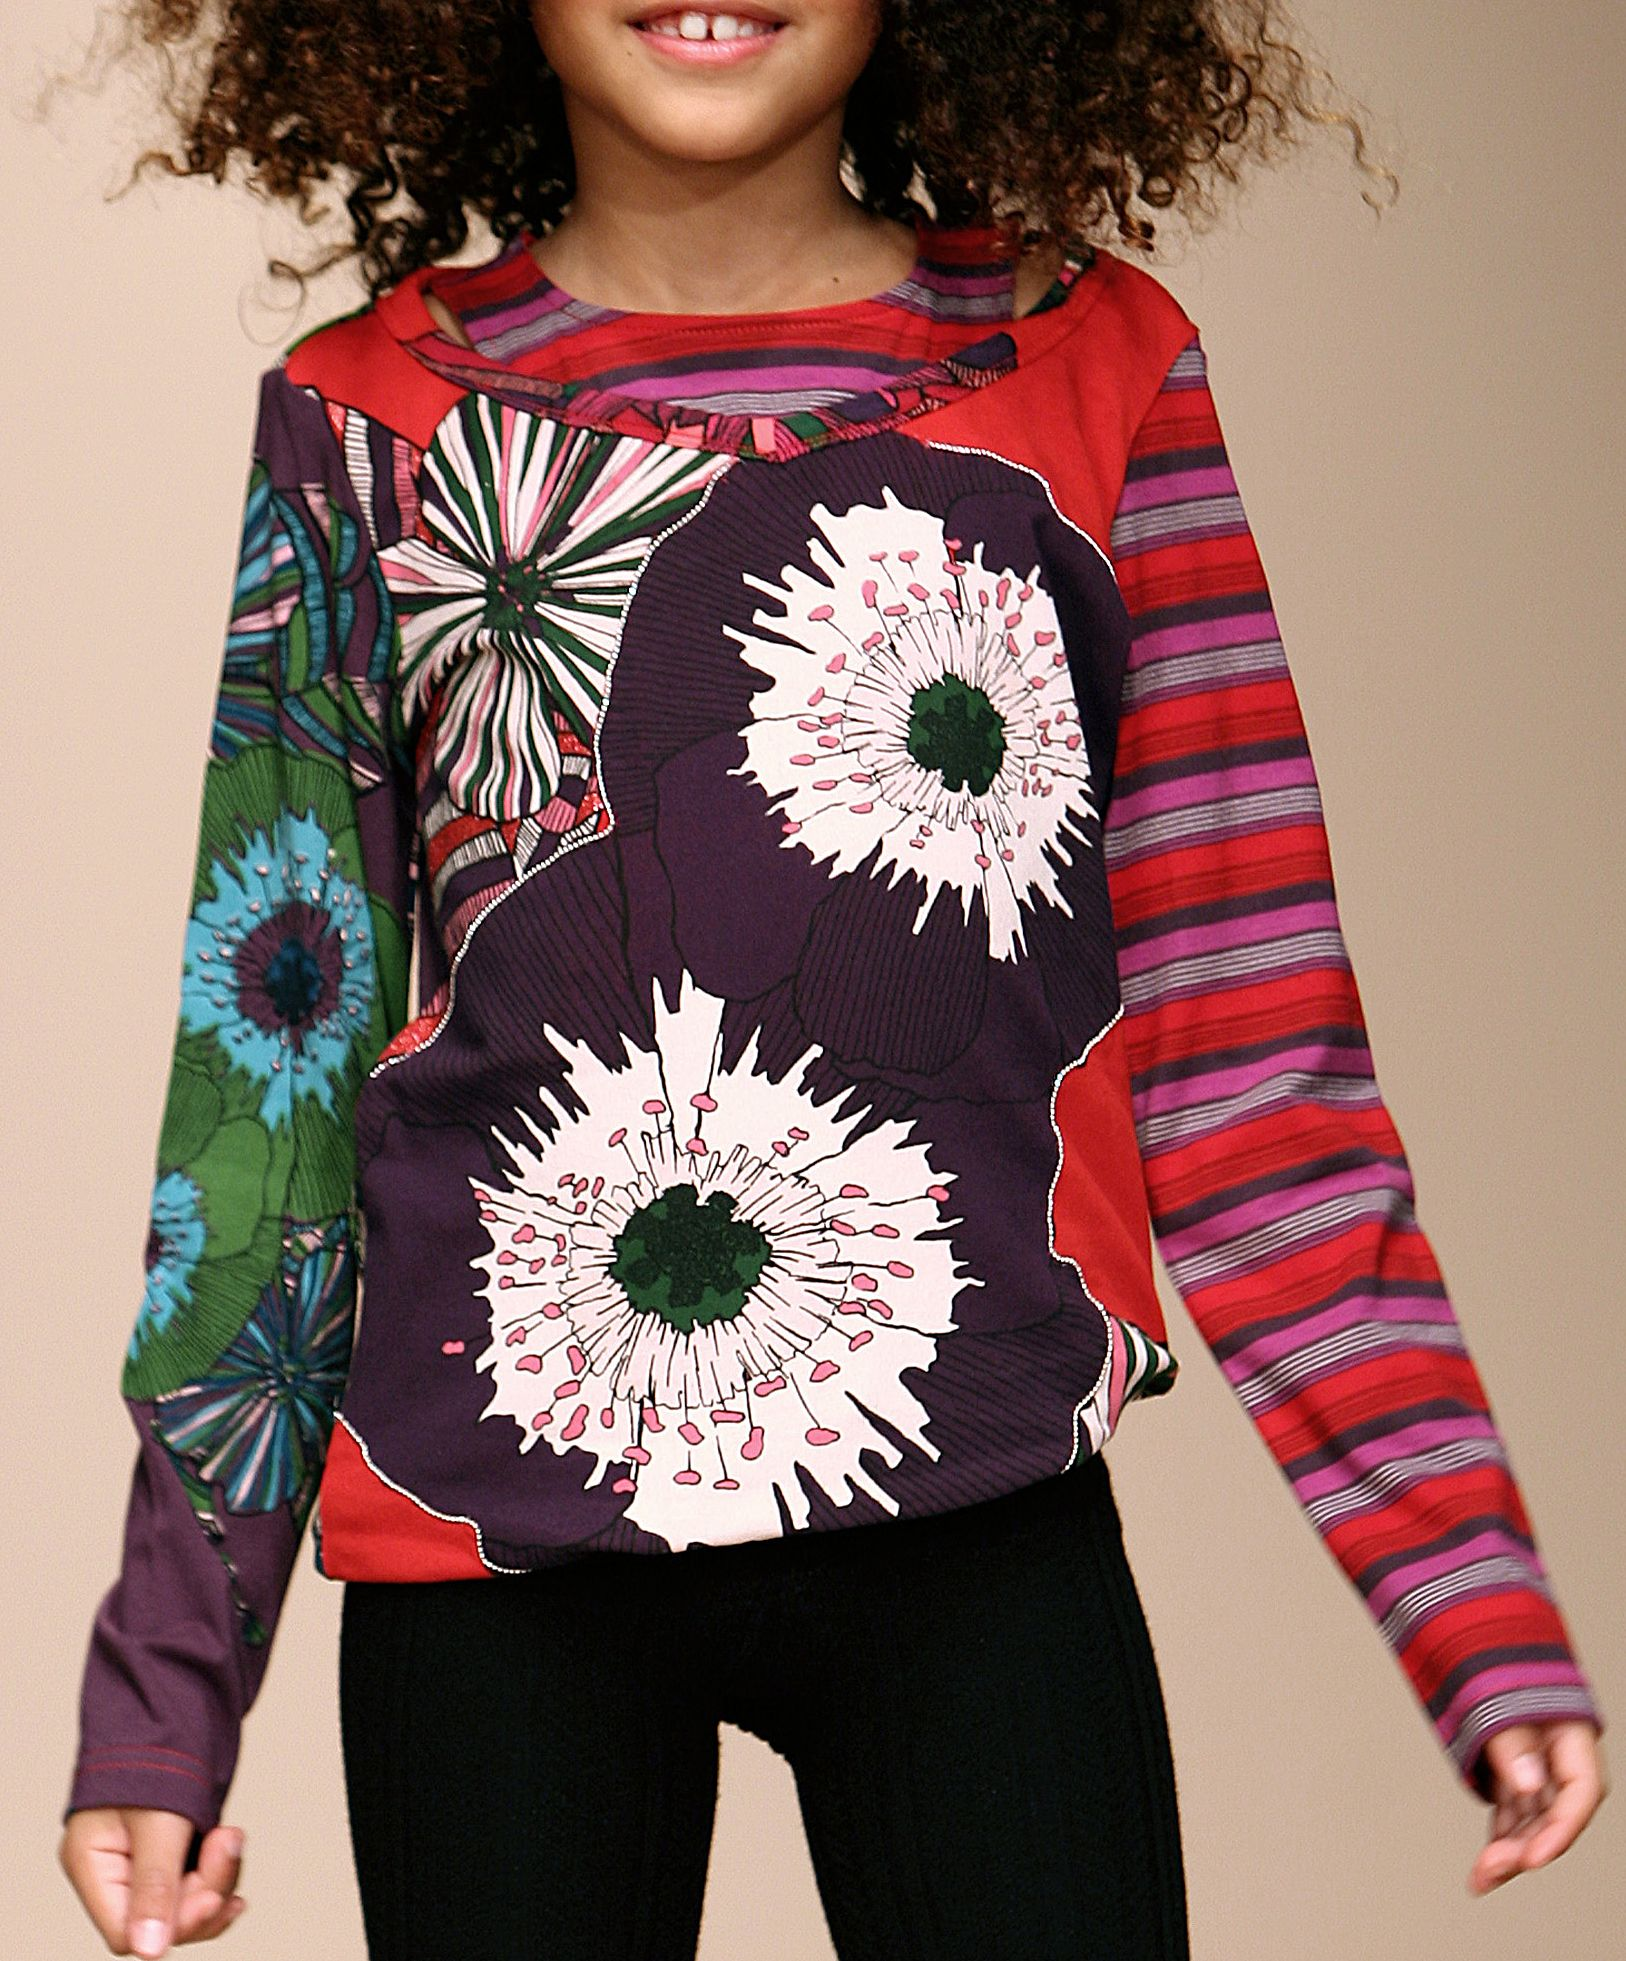 Desigual Flower T-shirt Red product image